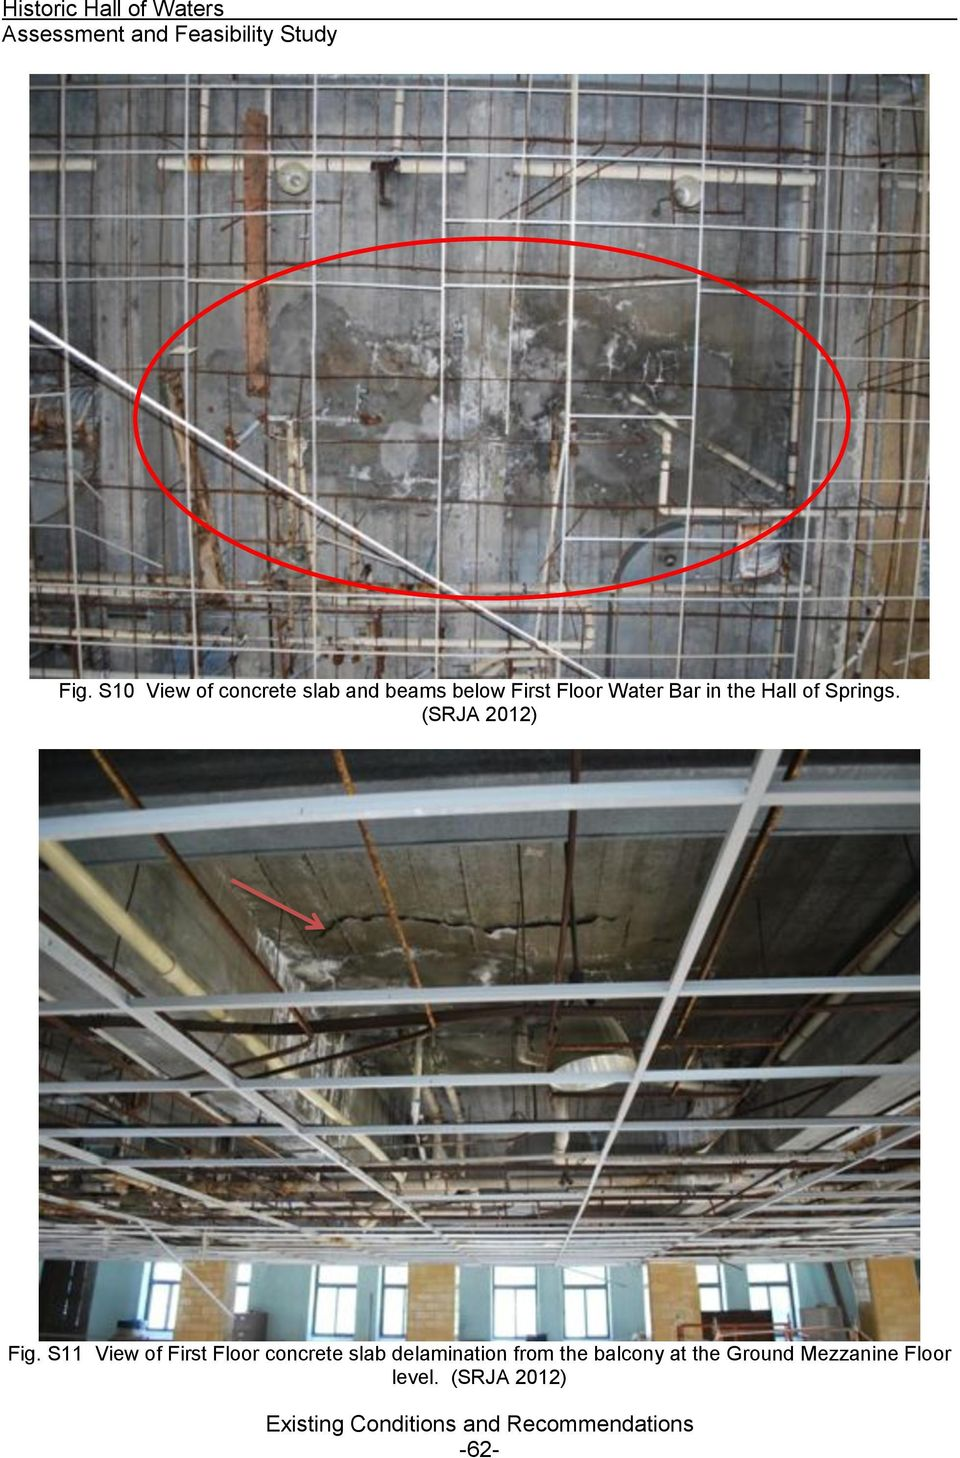 S11 View of First Floor concrete slab delamination from